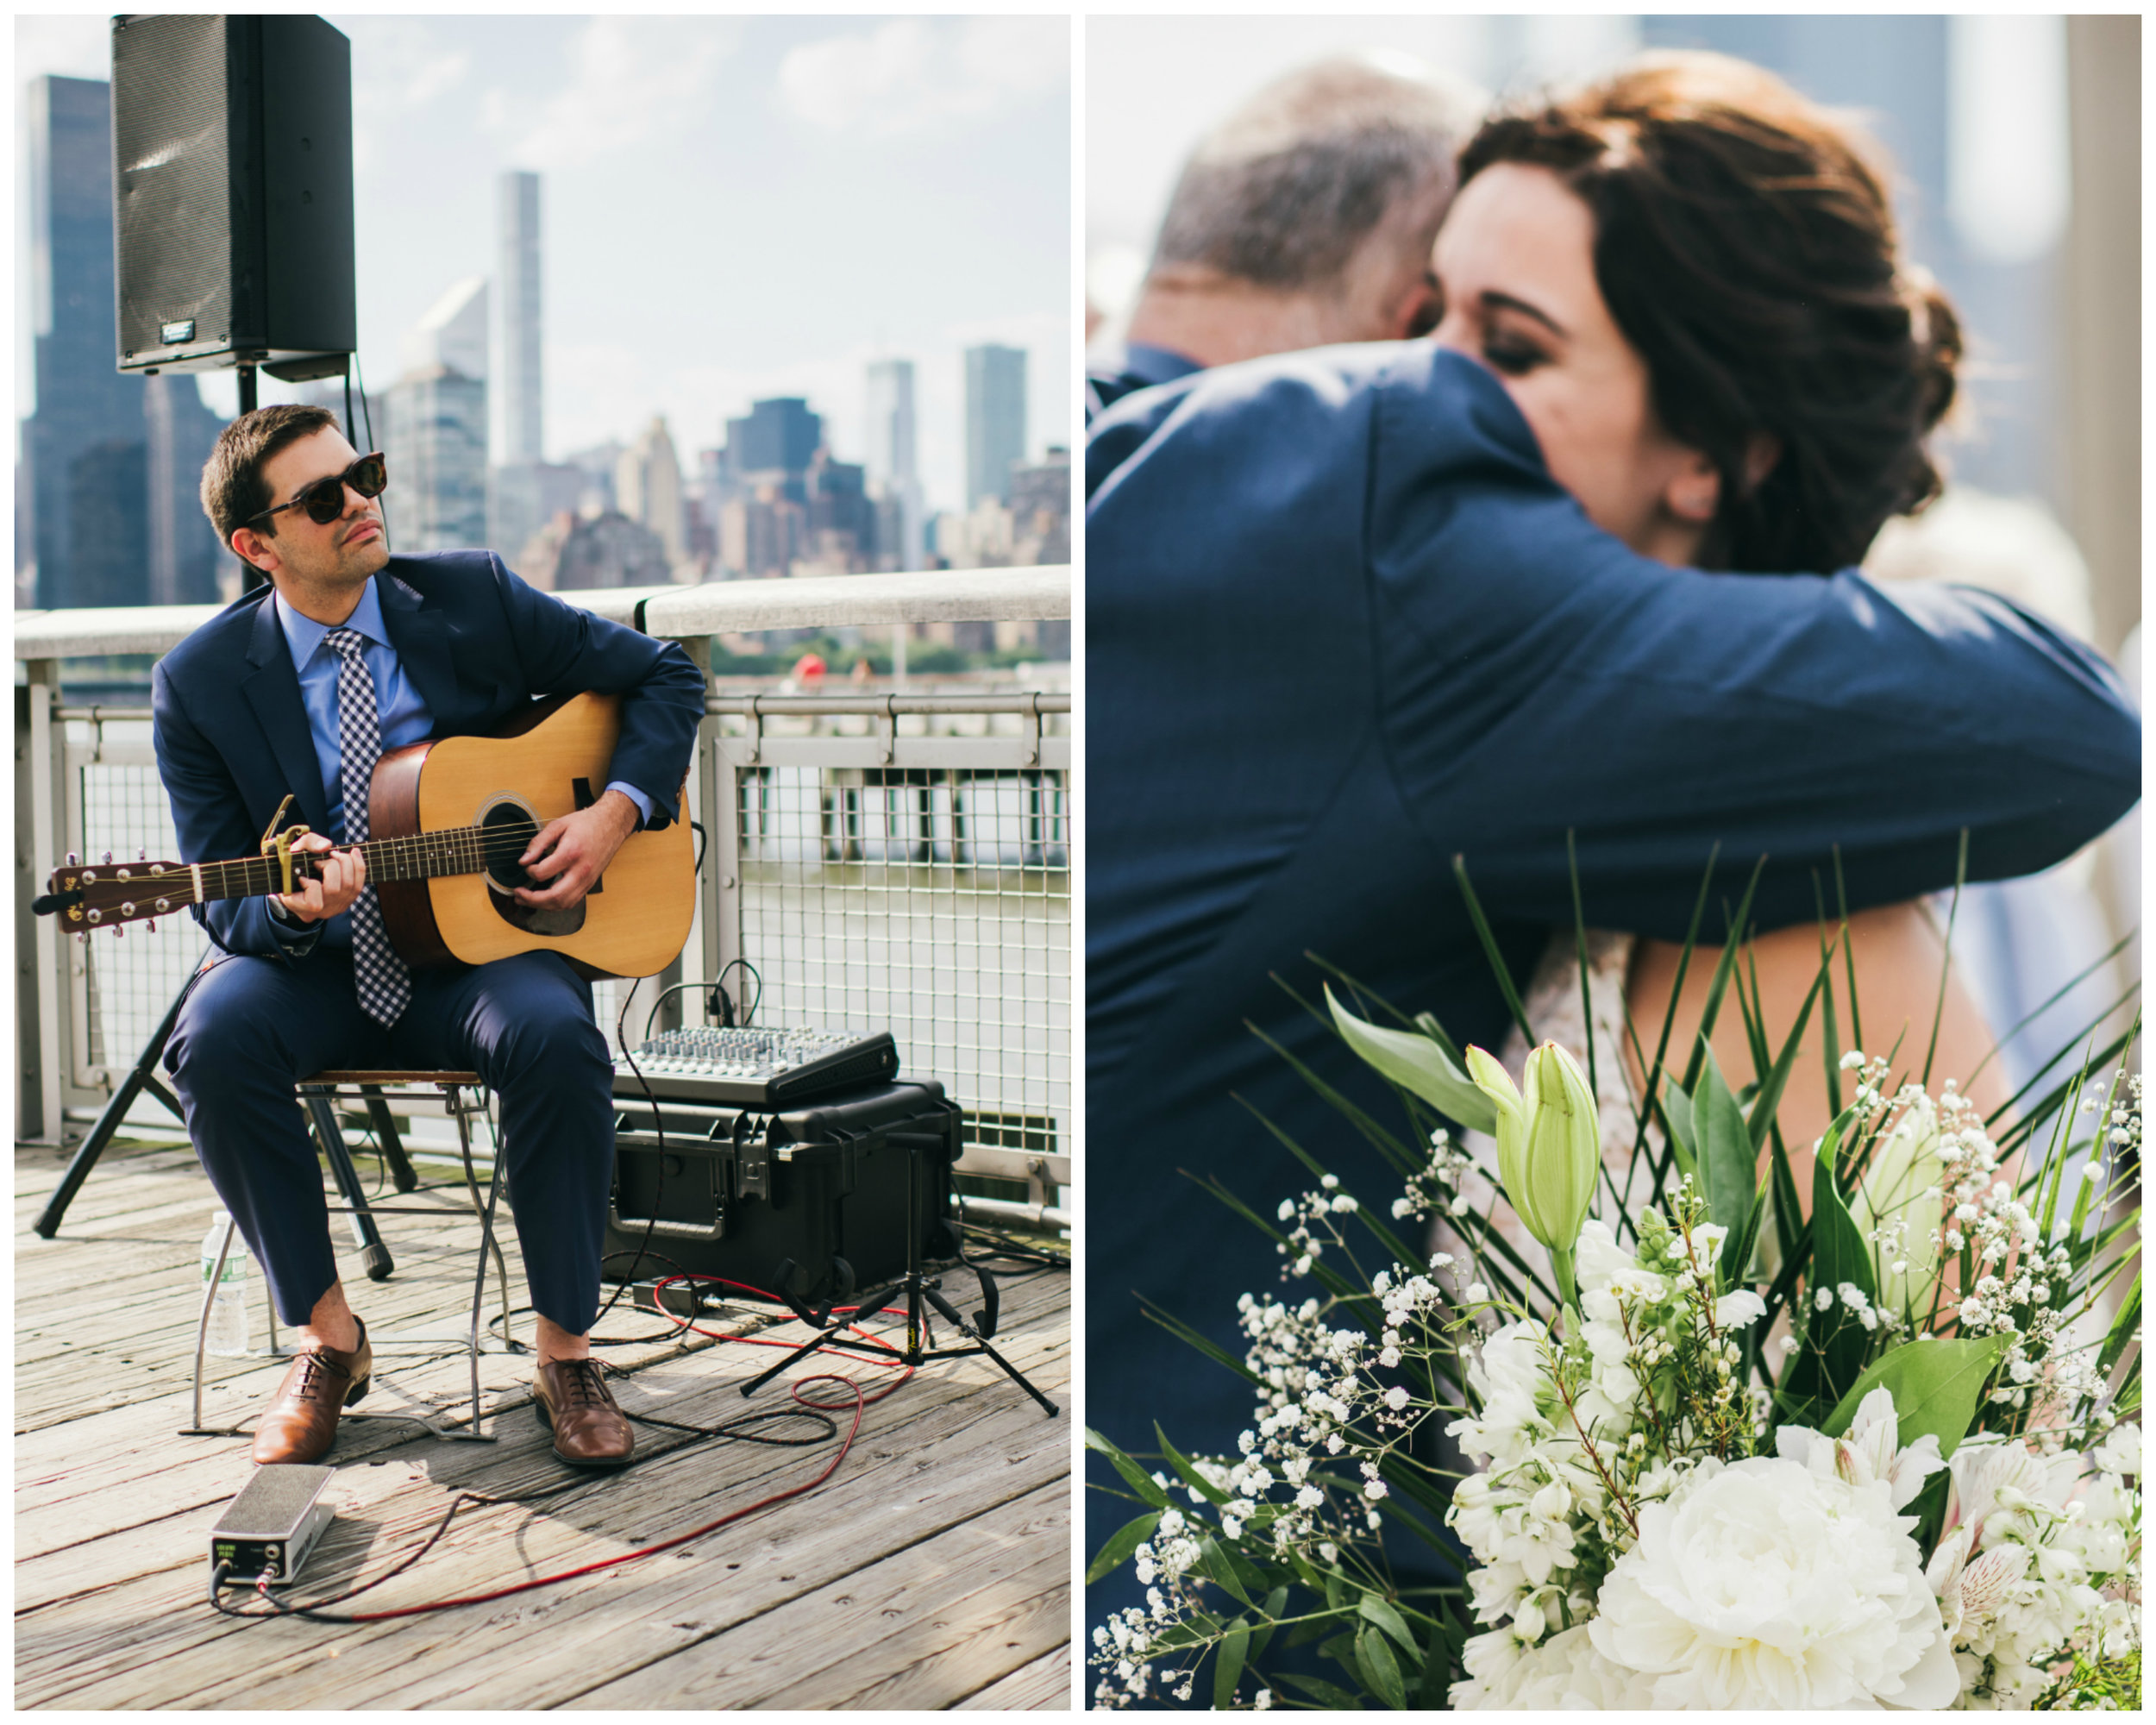 LE FANFARE- NYC INTIMATE WEDDING PHOTOGRAPHER - CHI-CHI ARI 7.jpg